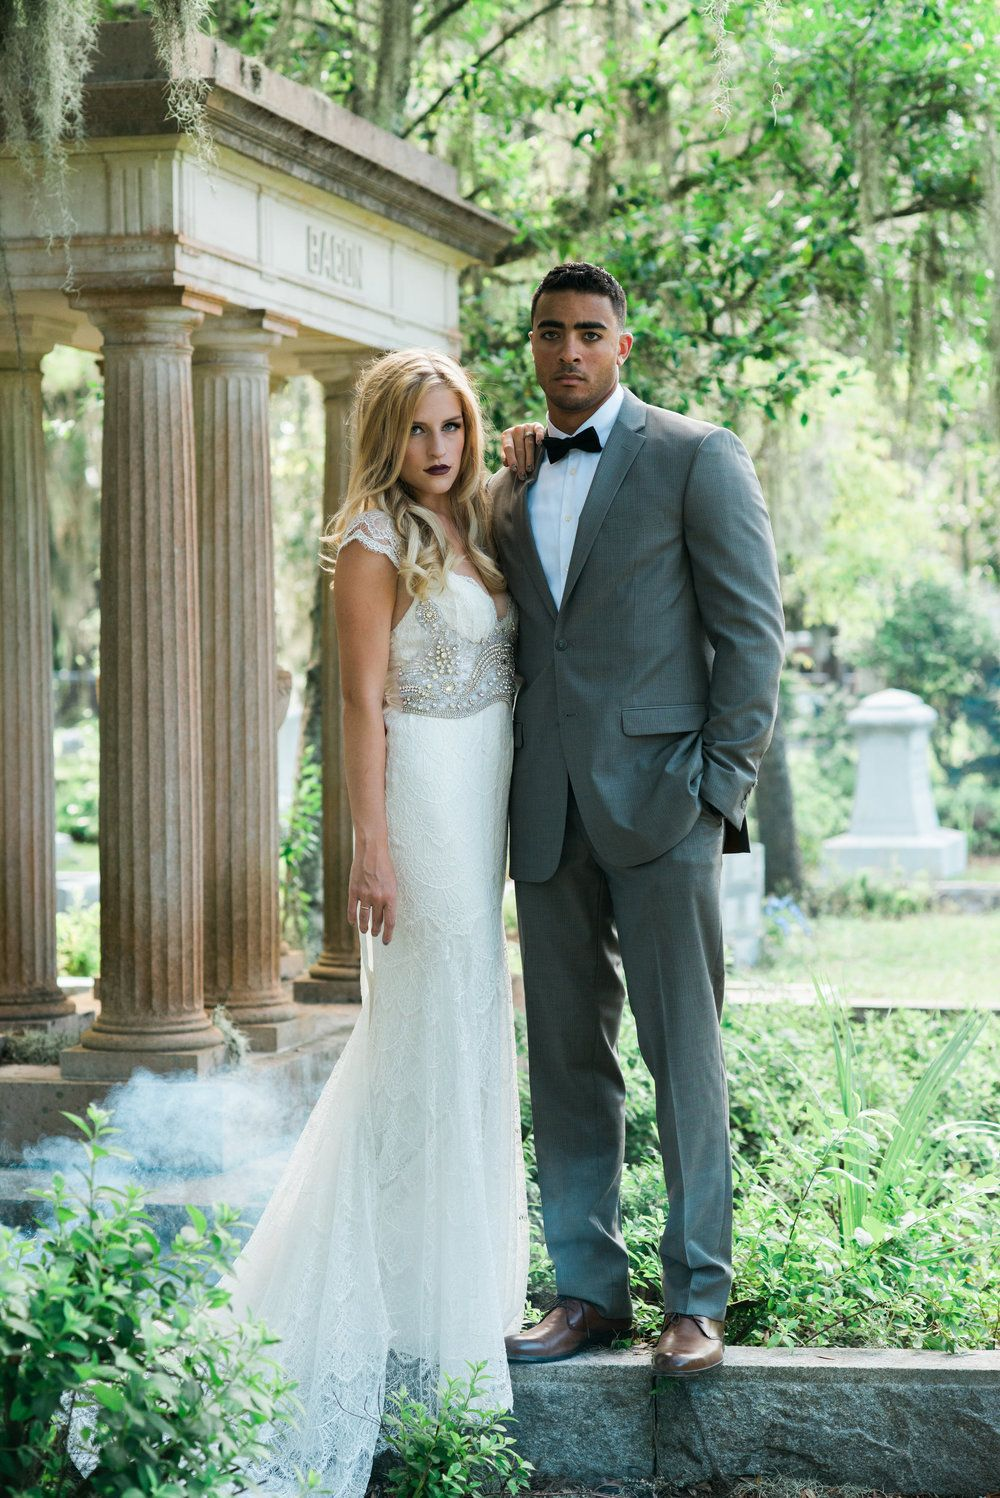 Haunted Wedding Inspiration At Bonaventure Cemetery Haunted Wedding Wedding Inspiration Savannah Wedding